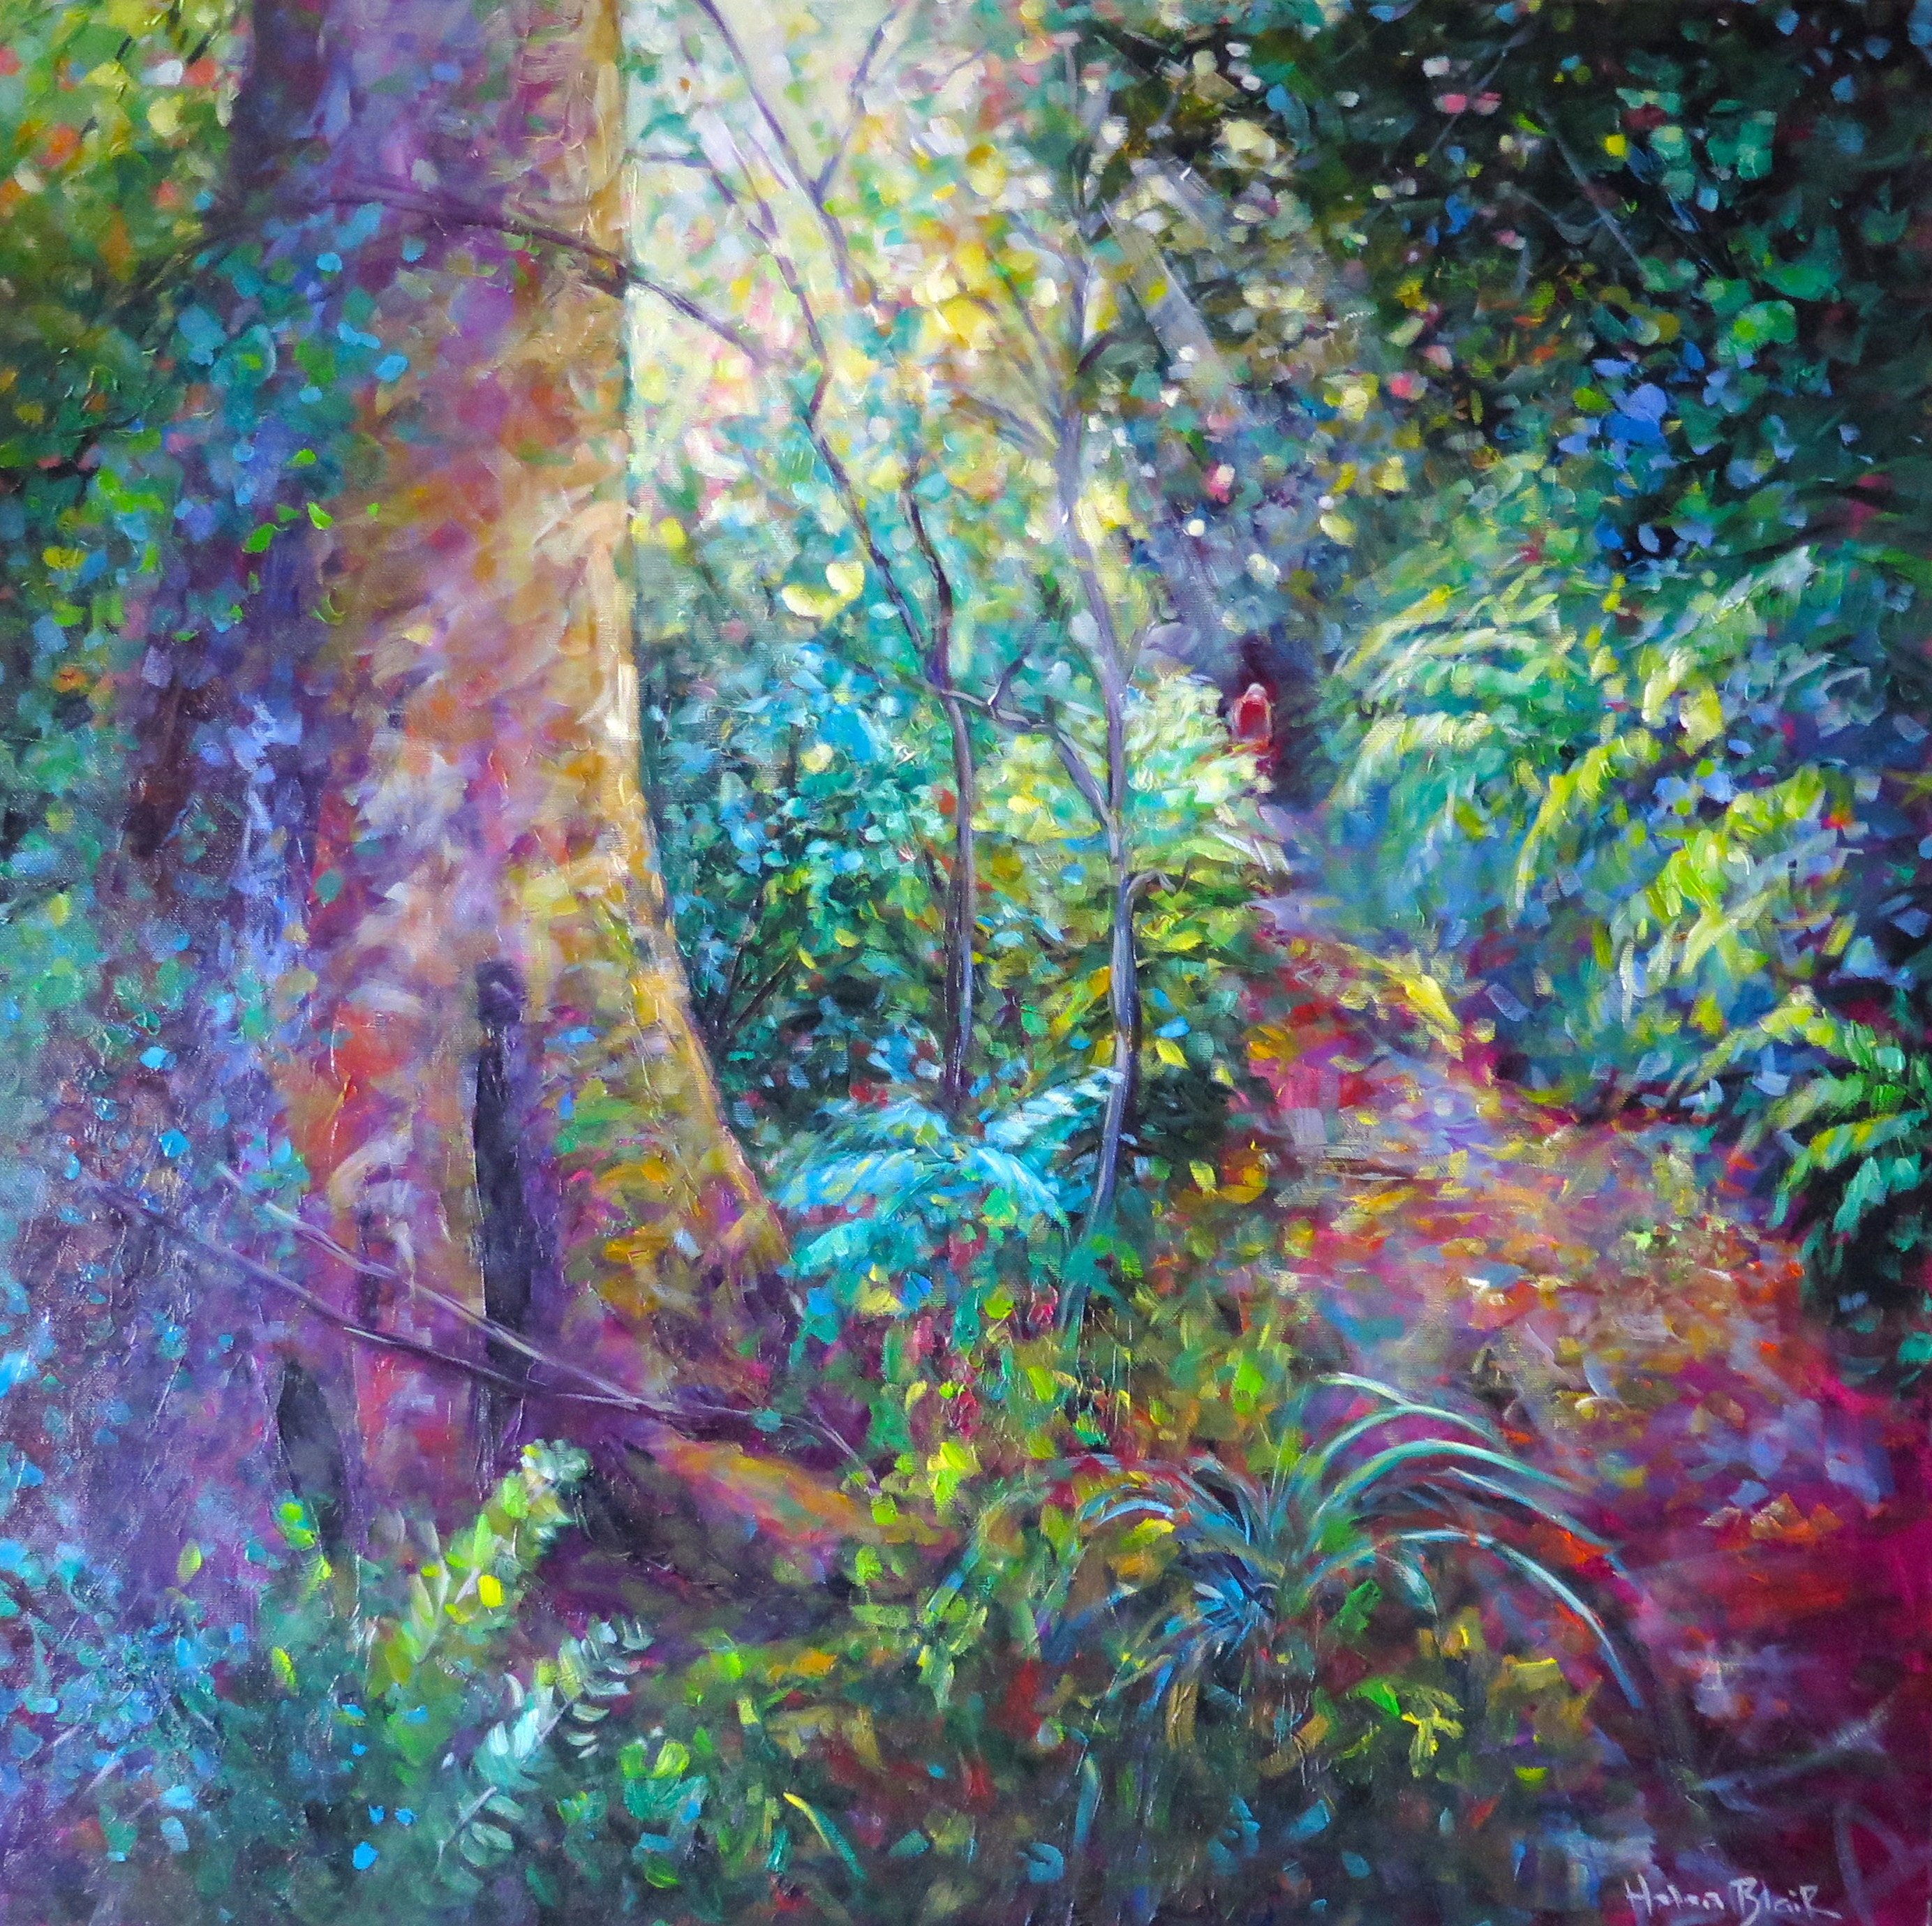 Bush Walk, by Helen Blair